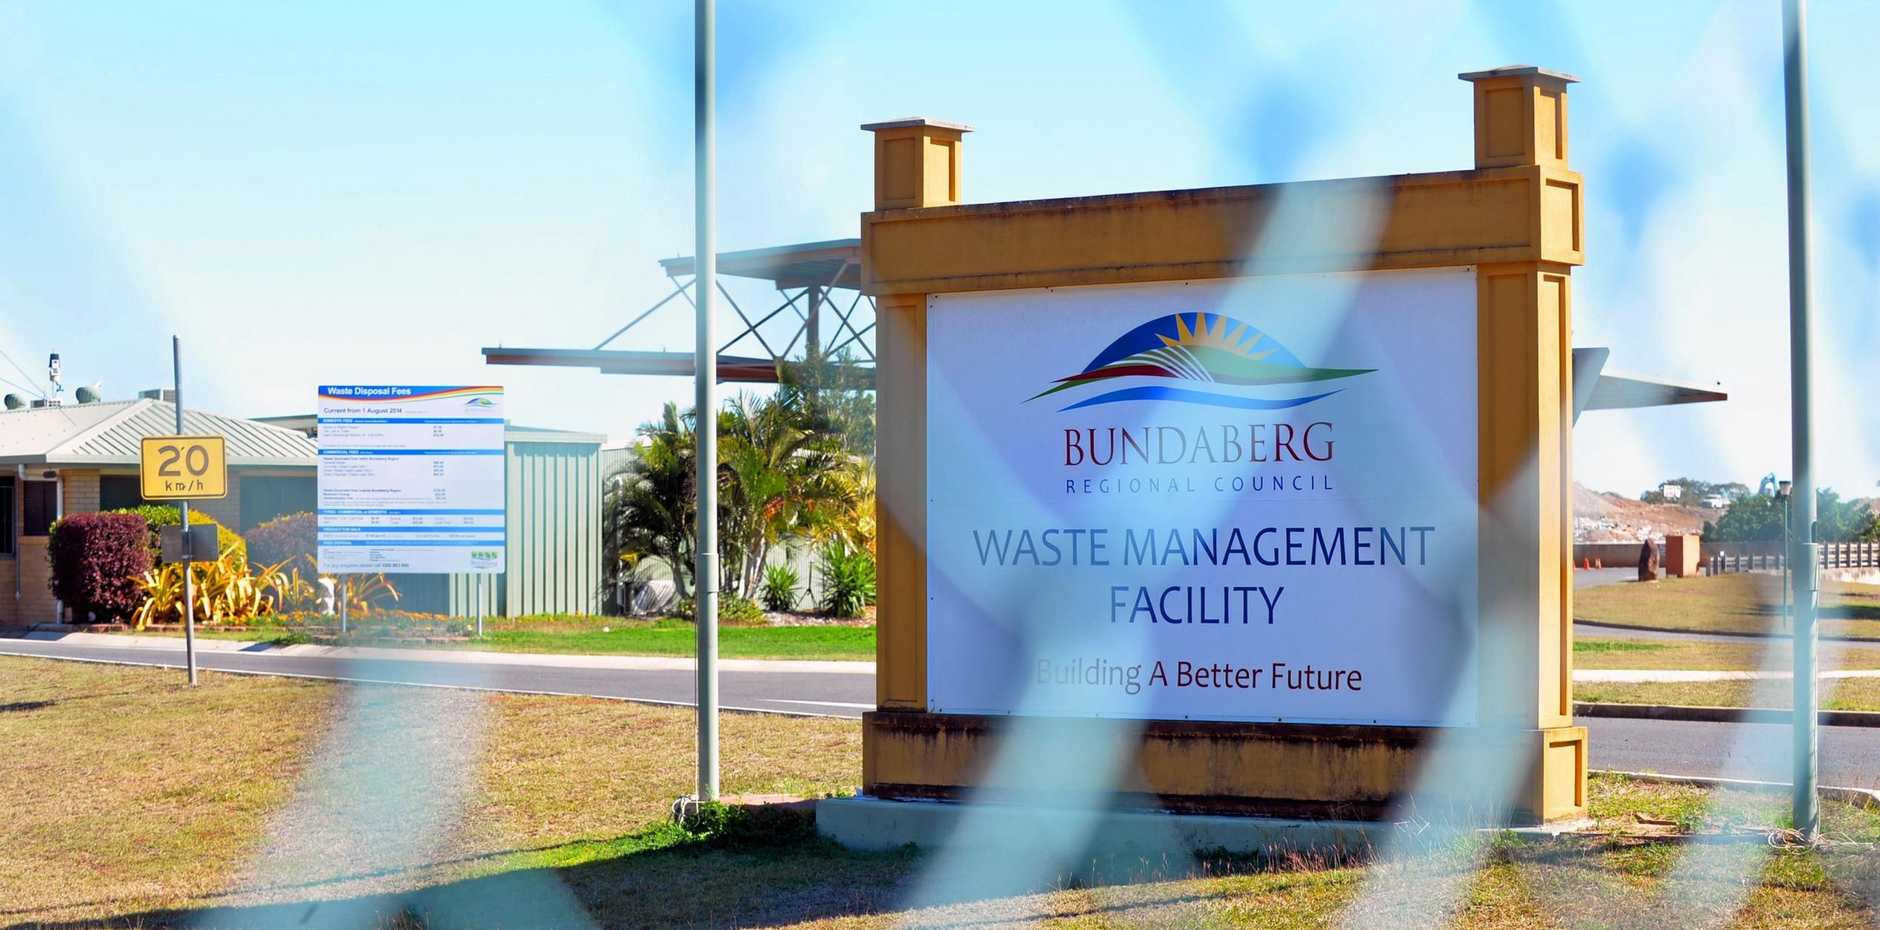 COMPOST DANGER: A local resident expresses concern after hearing the mulch he purchased from the Bundaberg Regional Council Waste Management Facility may contain asbestos.  Photo: Zach Hogg / NewsMail